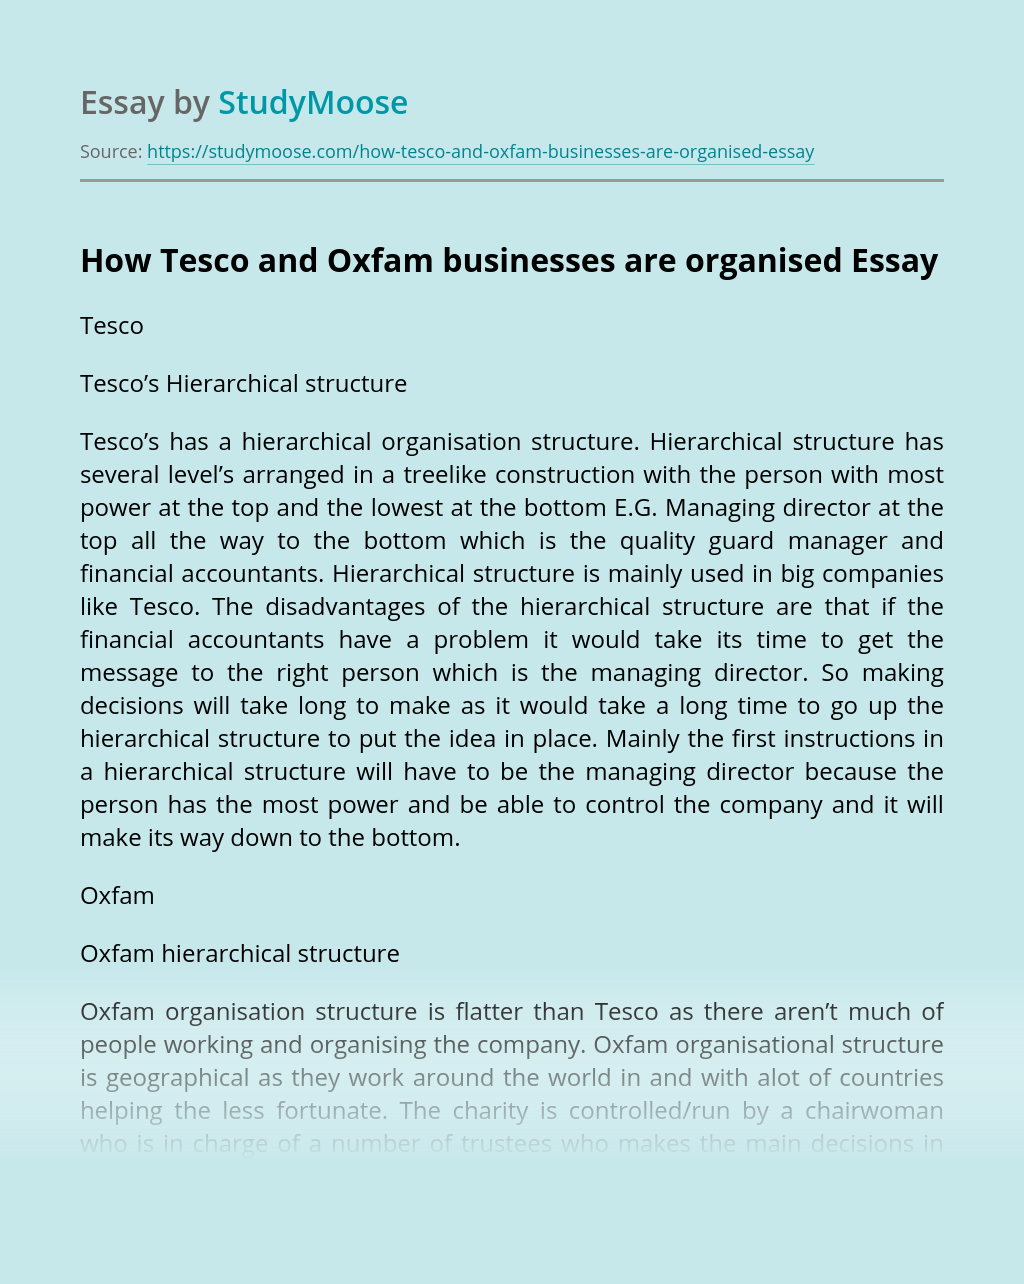 How Tesco and Oxfam businesses are organised